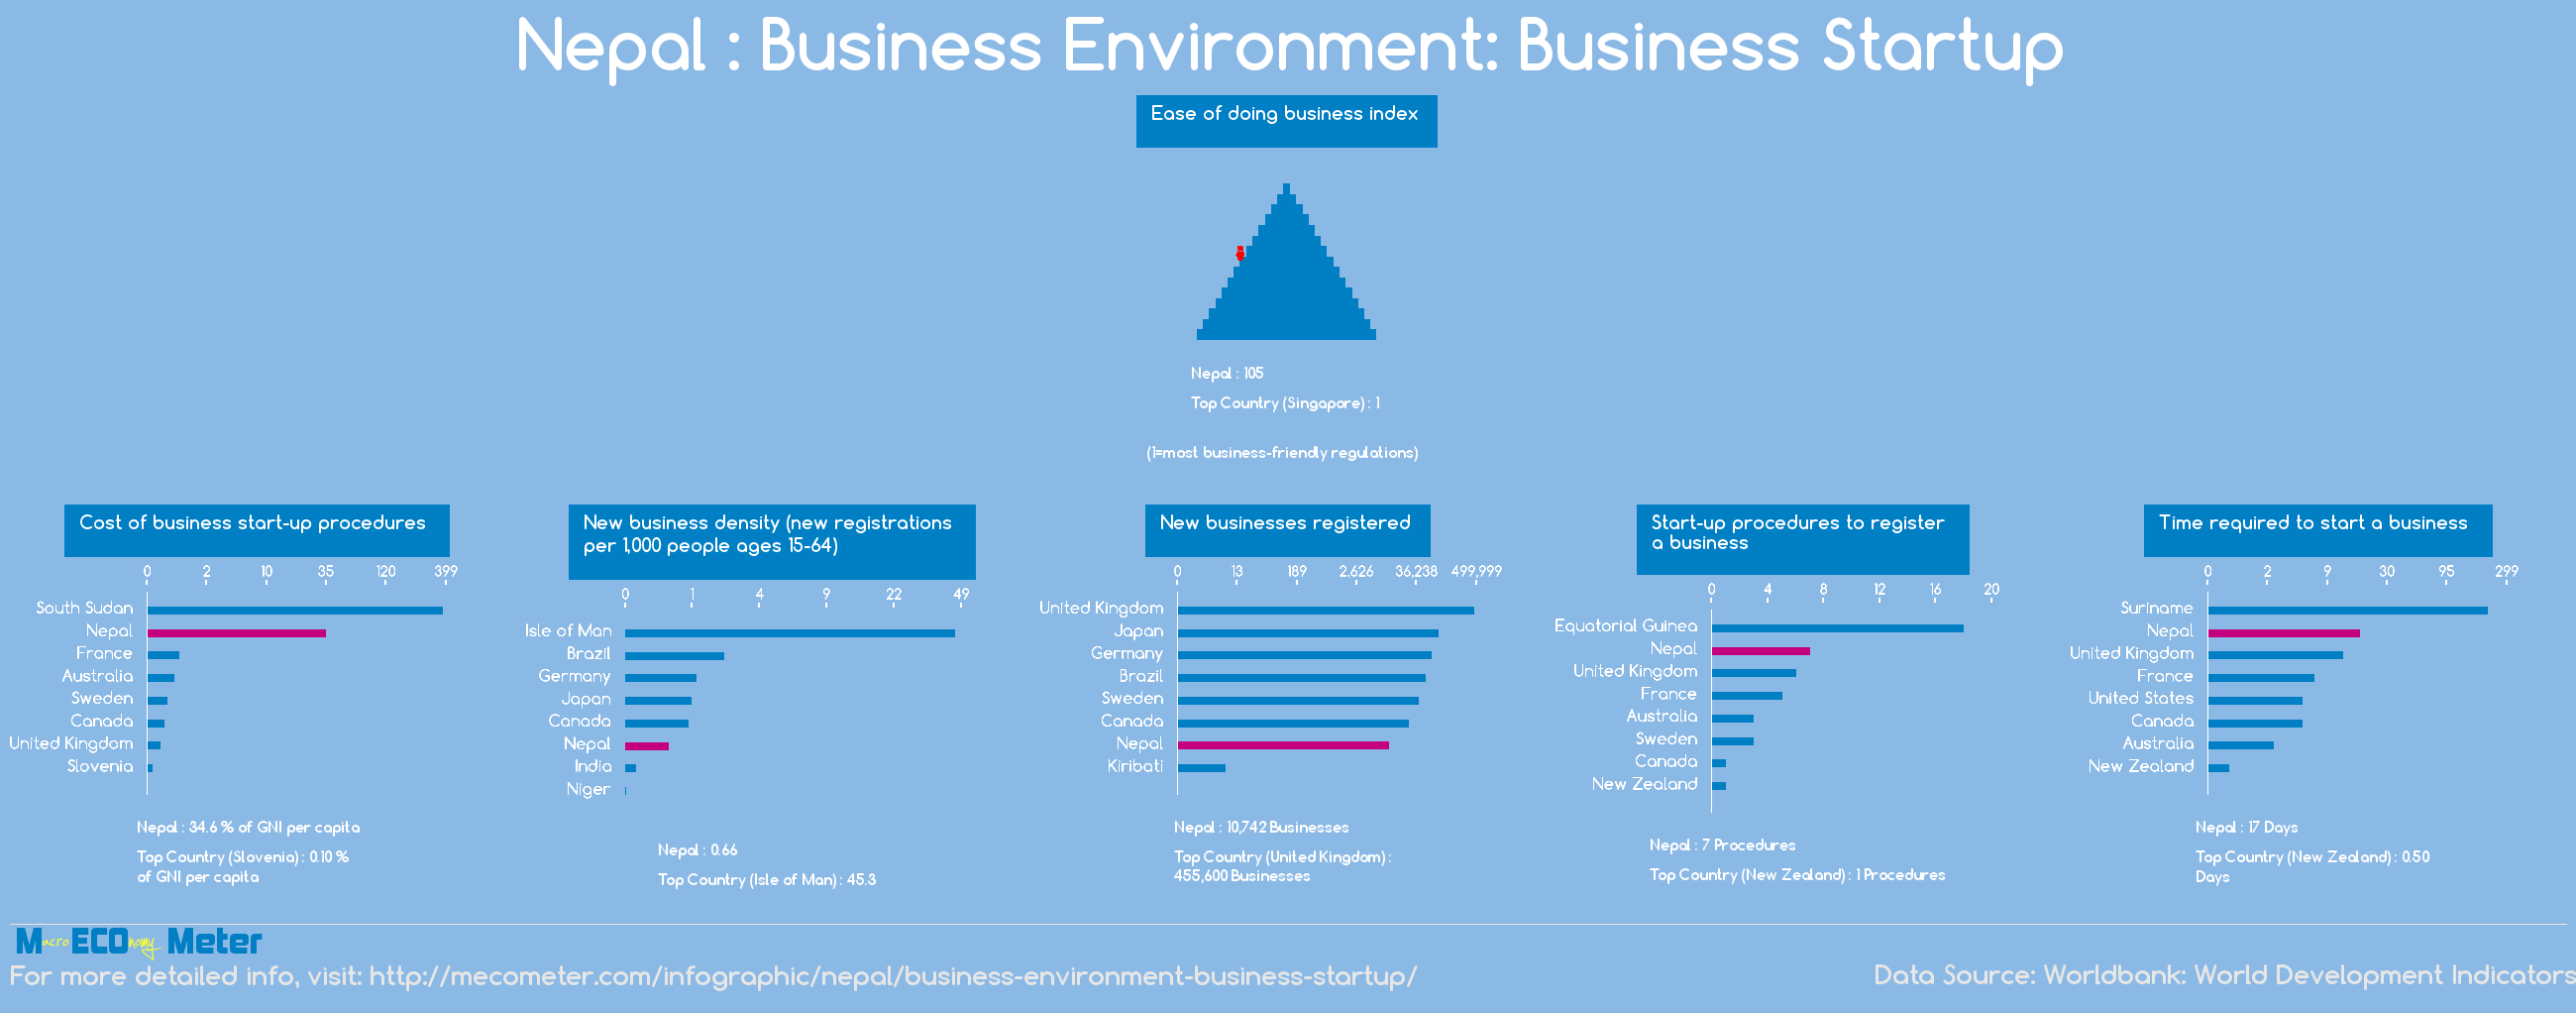 Nepal : Business Environment: Business Startup